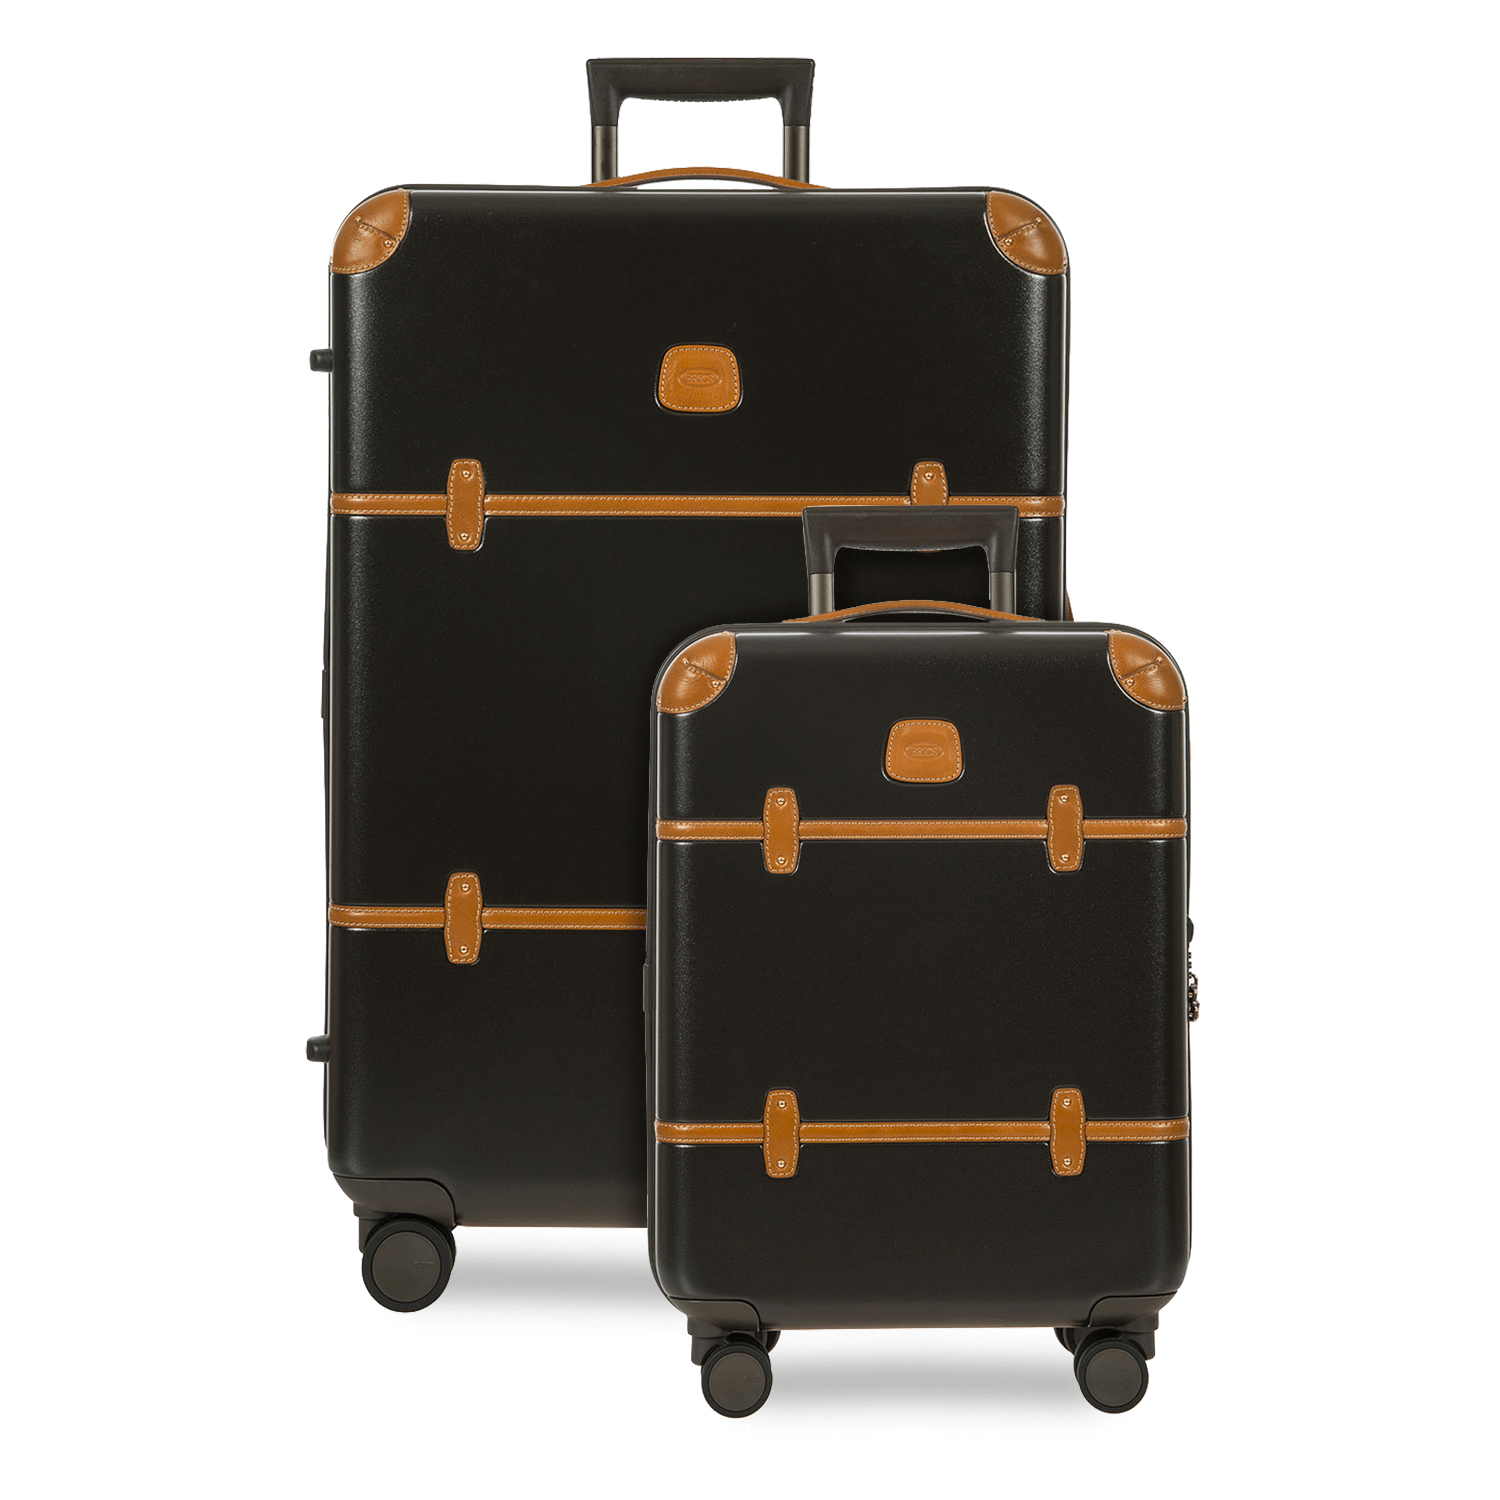 2 Bestselling Hardside Spinners consisting of a 21 Inch Carry-On and 30 Inch Spinner.